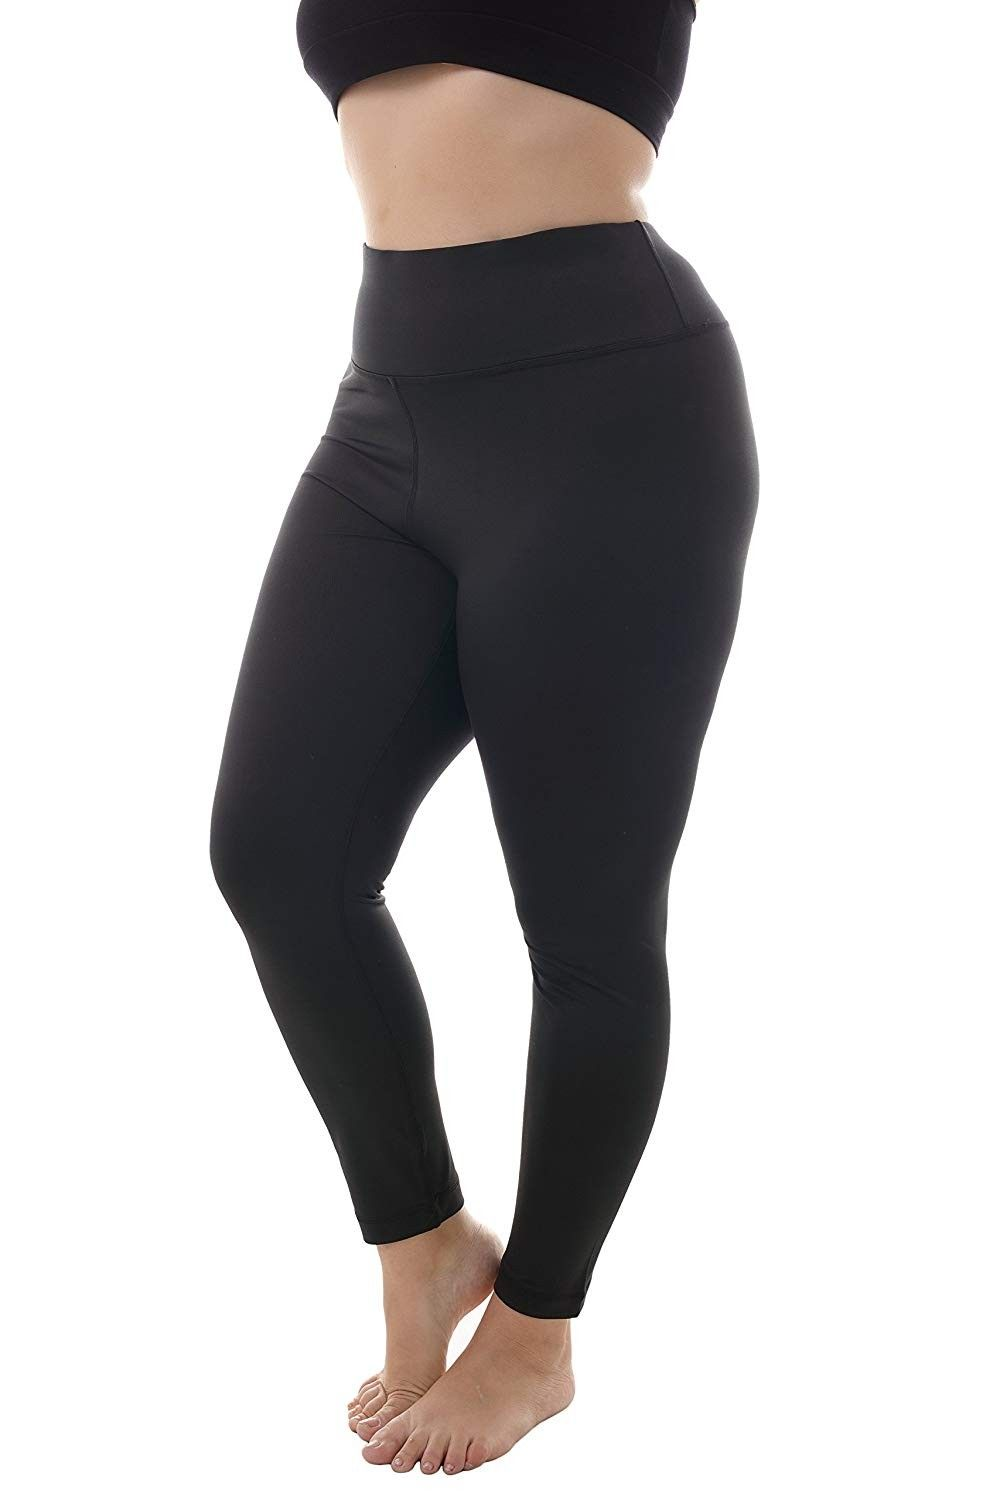 It S Not A Myth Finally There S Cute Plus Size Women S Workout Wear That Fits Your Curves Accent Fitness Wear Women Plus Size Workout Summer Workout Outfits